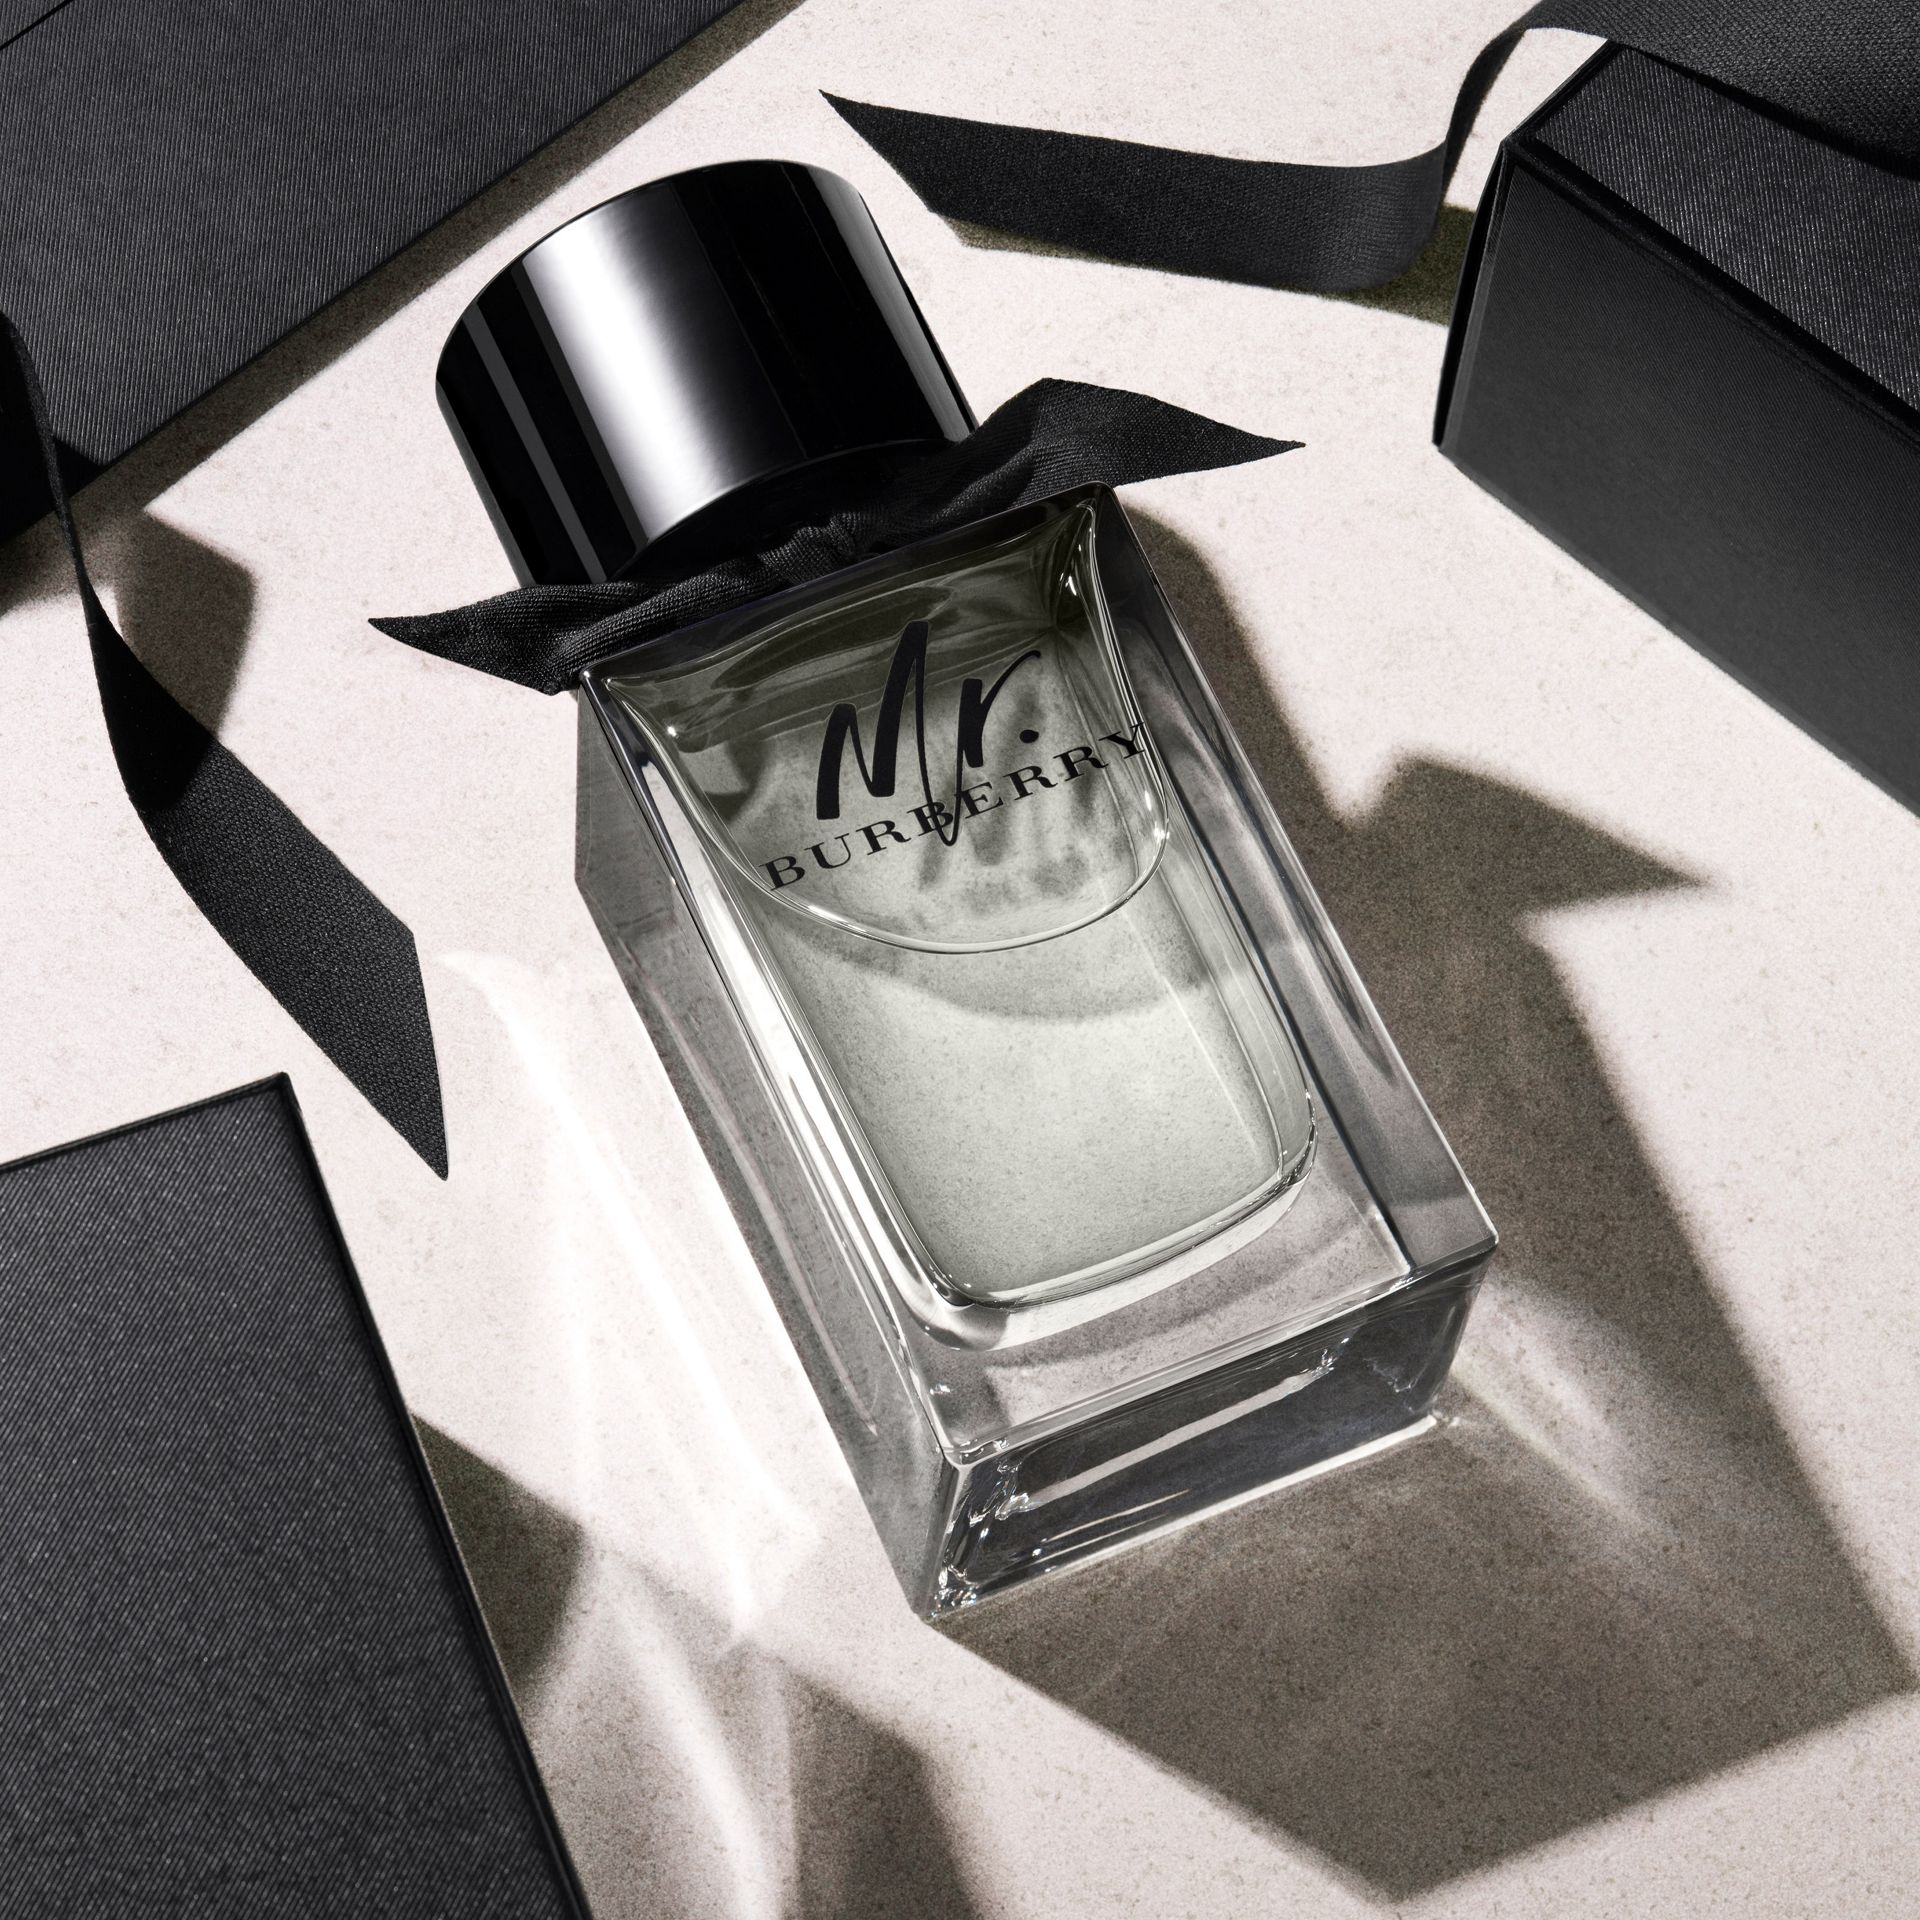 Mr. Burberry Eau de Toilette 150 ml | Burberry - Galerie-Bild 2